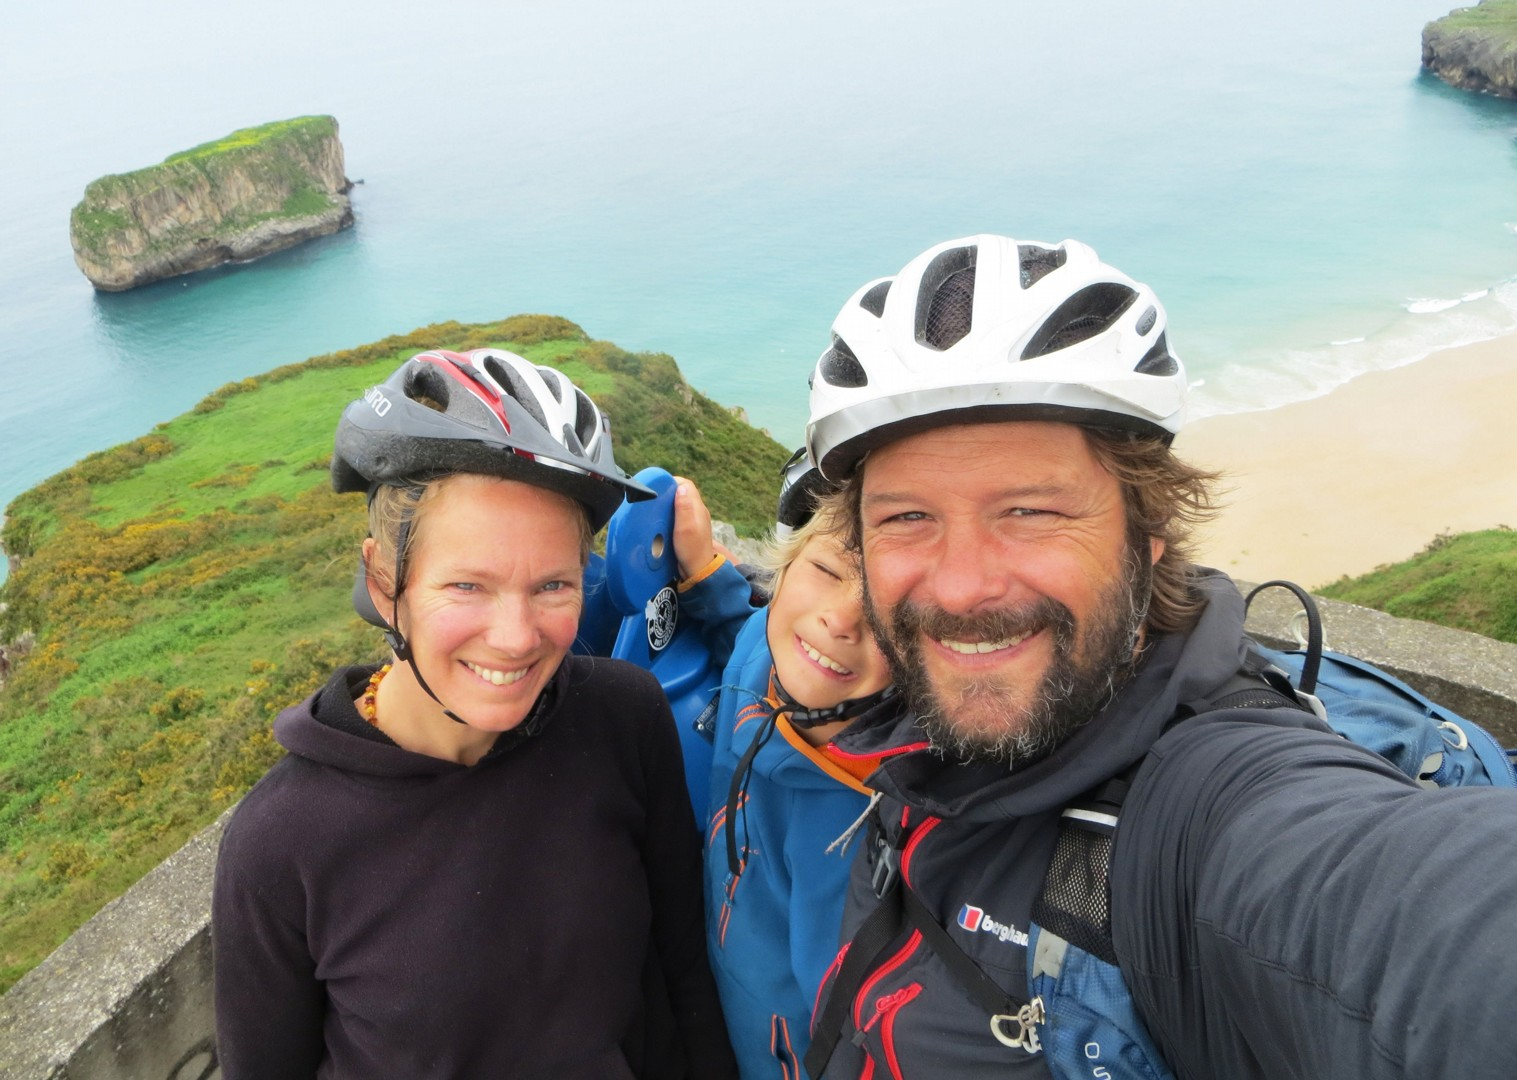 family-cycling-holiday-guides-northern-spain-coast.jpg - Spain - Asturian Coastal Ride - Family Cycling